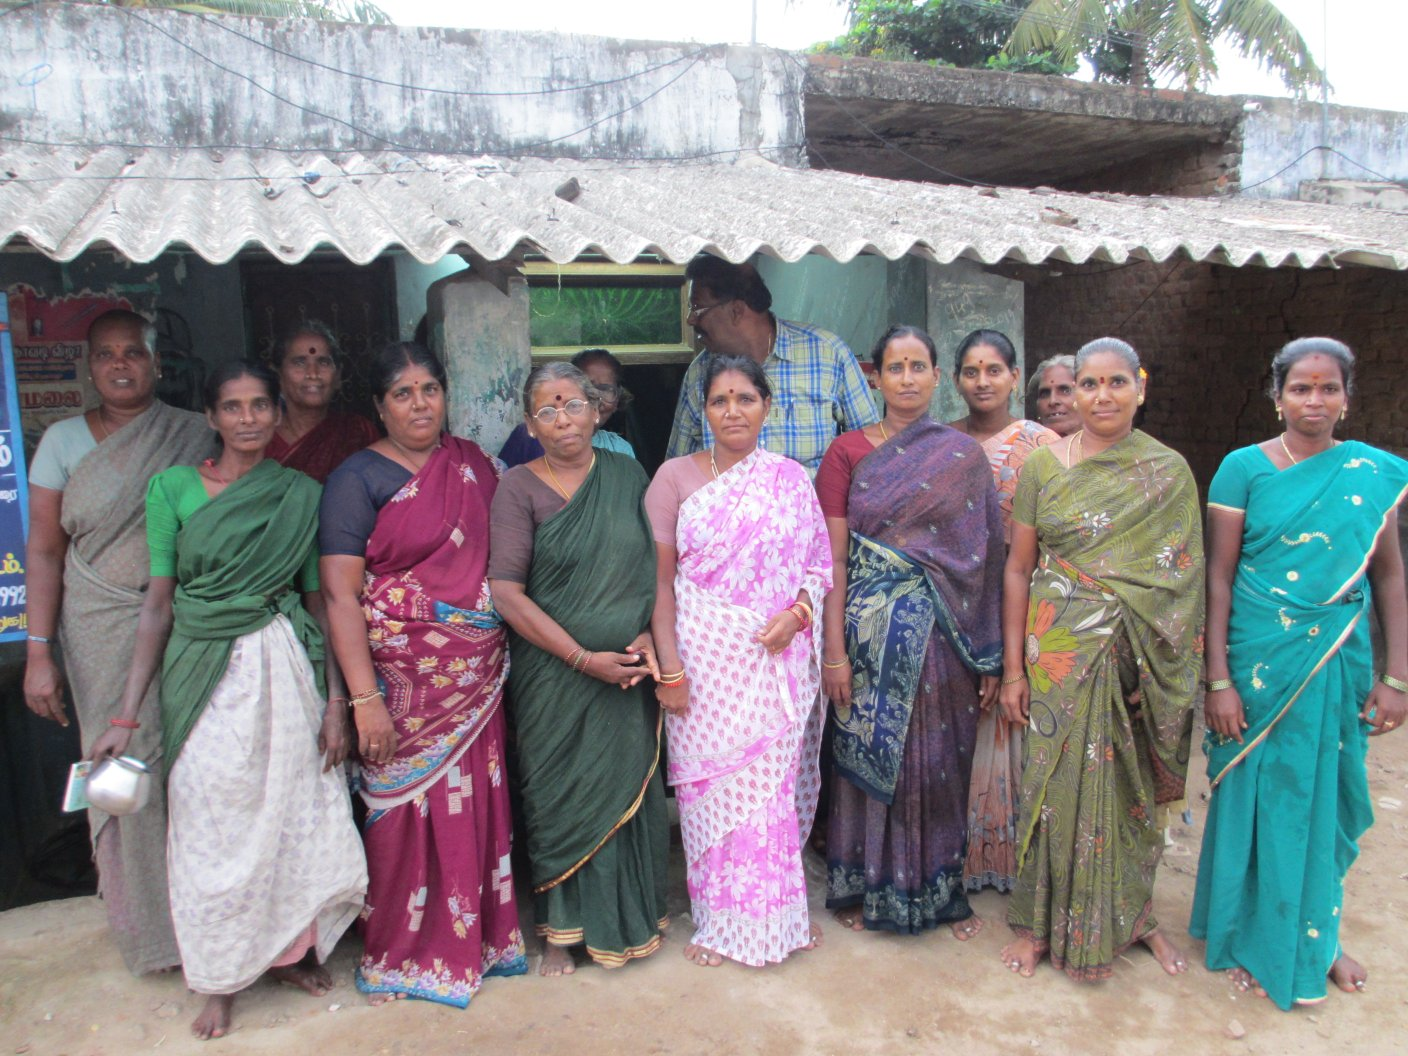 Ms. Kuppamal and the Self-Help-Group ladies from Musaravakkam